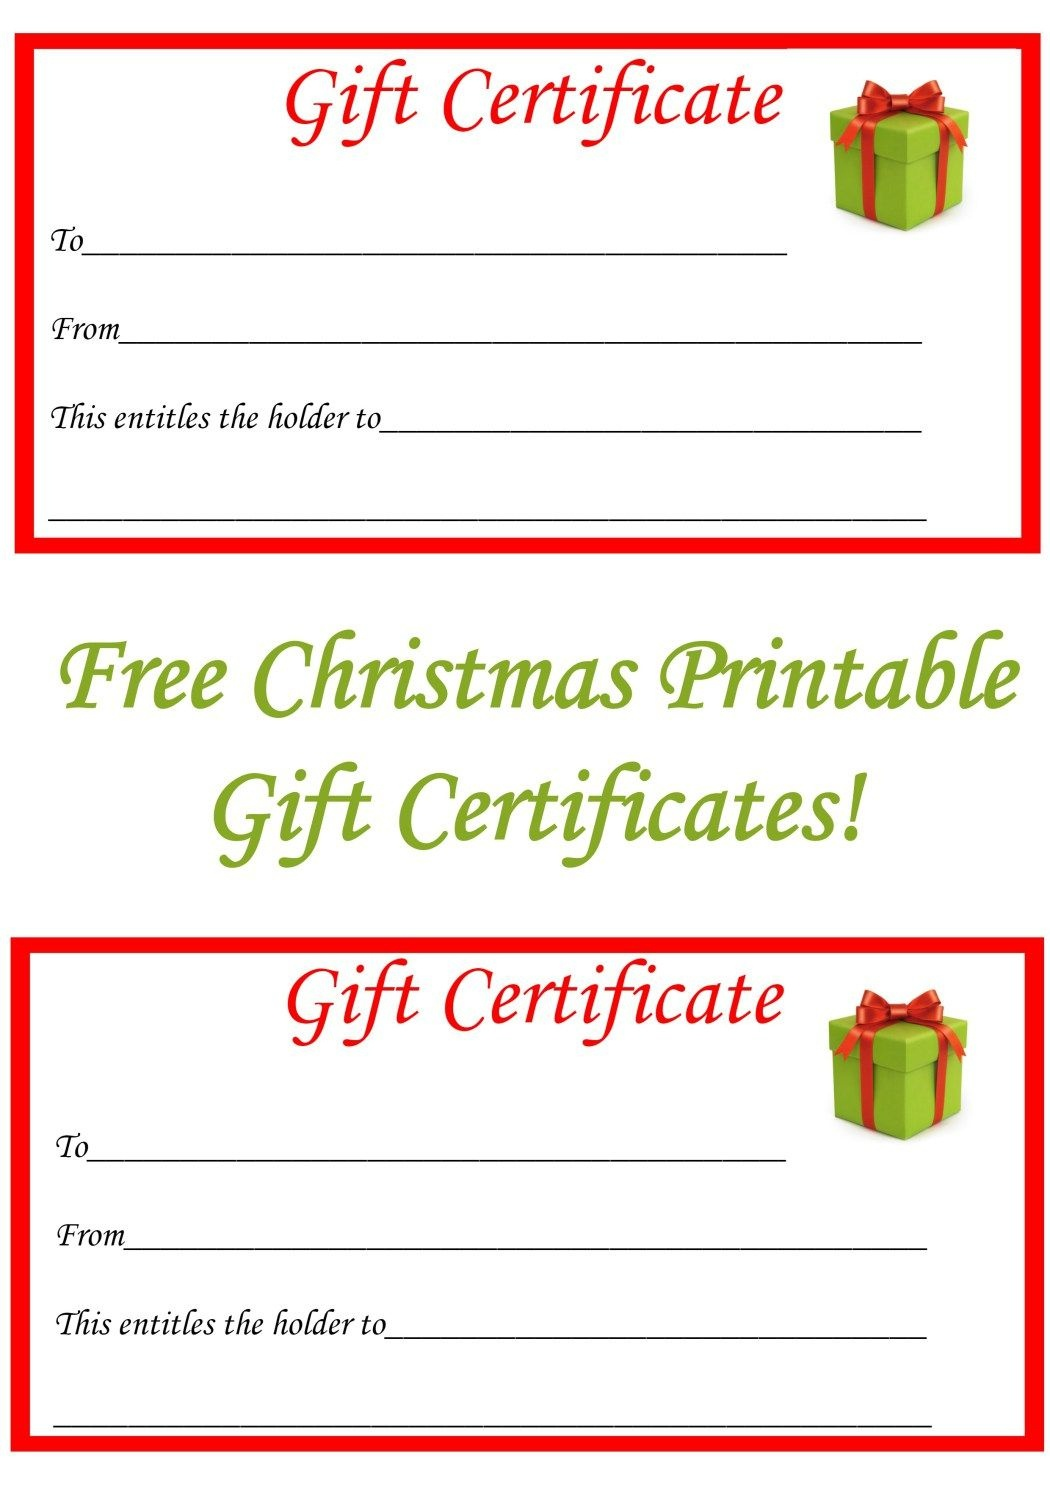 Free Christmas Printable Gift Certificates | Gift Ideas | Christmas - Free Printable Gift Certificate Template